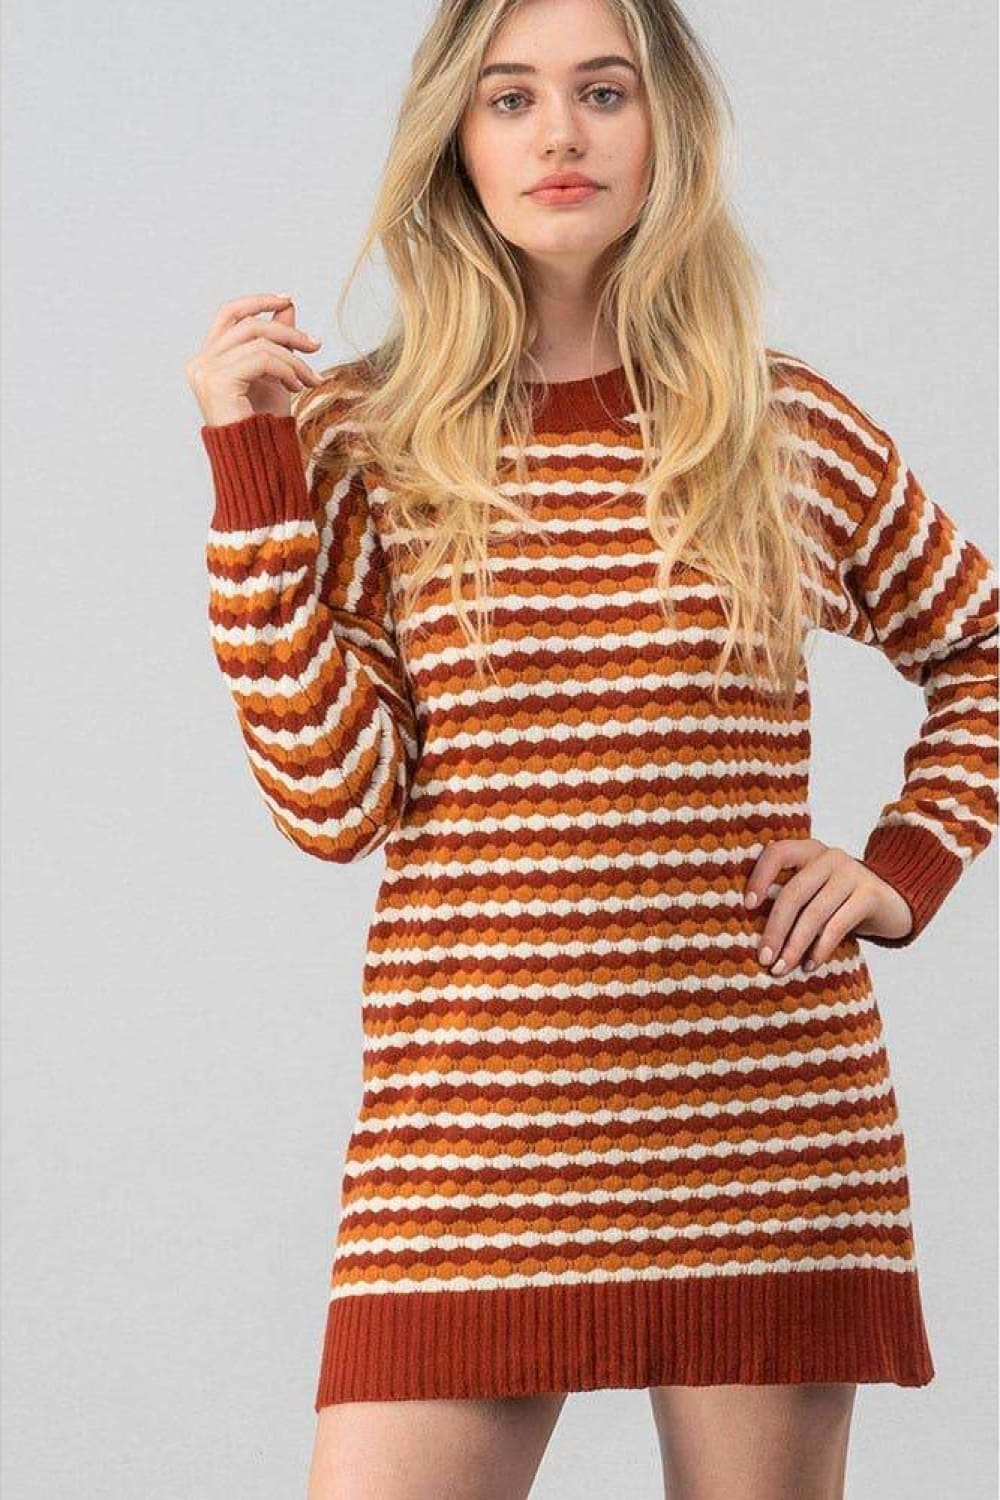 Zoey Texture Knit Striped Sweater Dress - Dresses - Evan & Jane